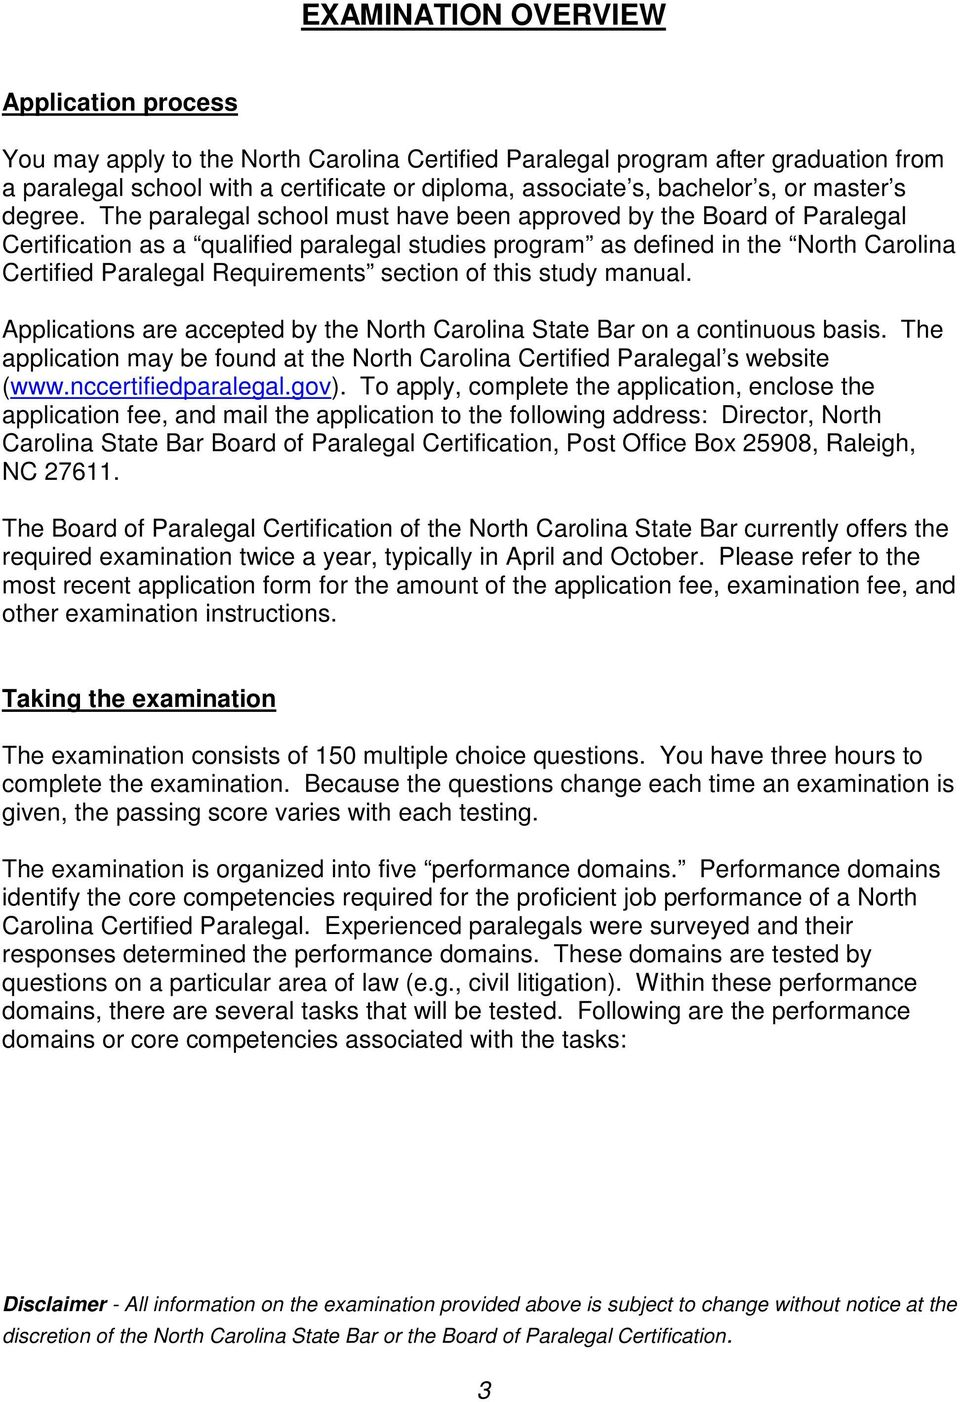 The paralegal school must have been approved by the Board of Paralegal Certification as a qualified paralegal studies program as defined in the North Carolina Certified Paralegal Requirements section